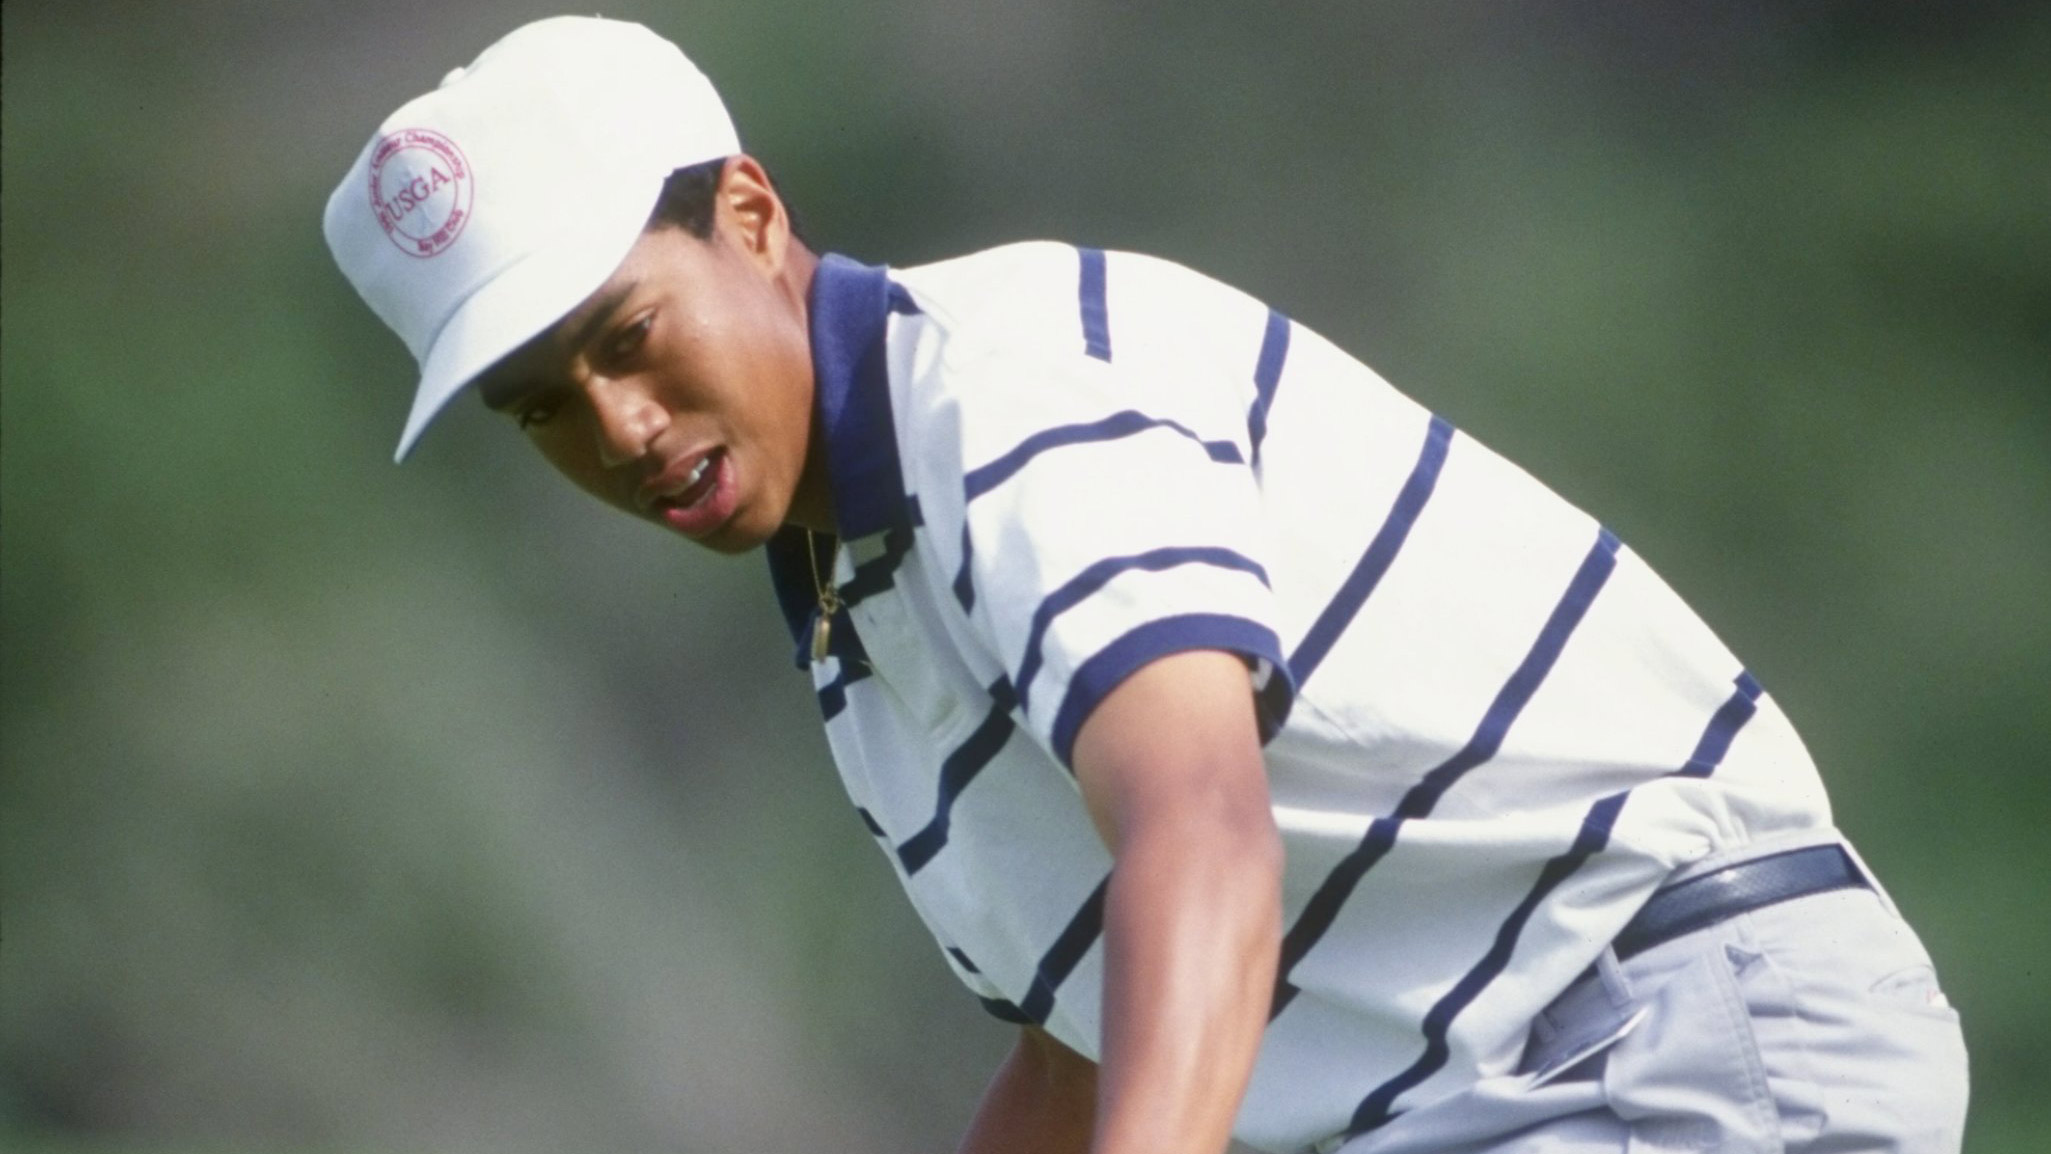 Tiger Woods reacts to his putt during the 1992 L.A. Open.